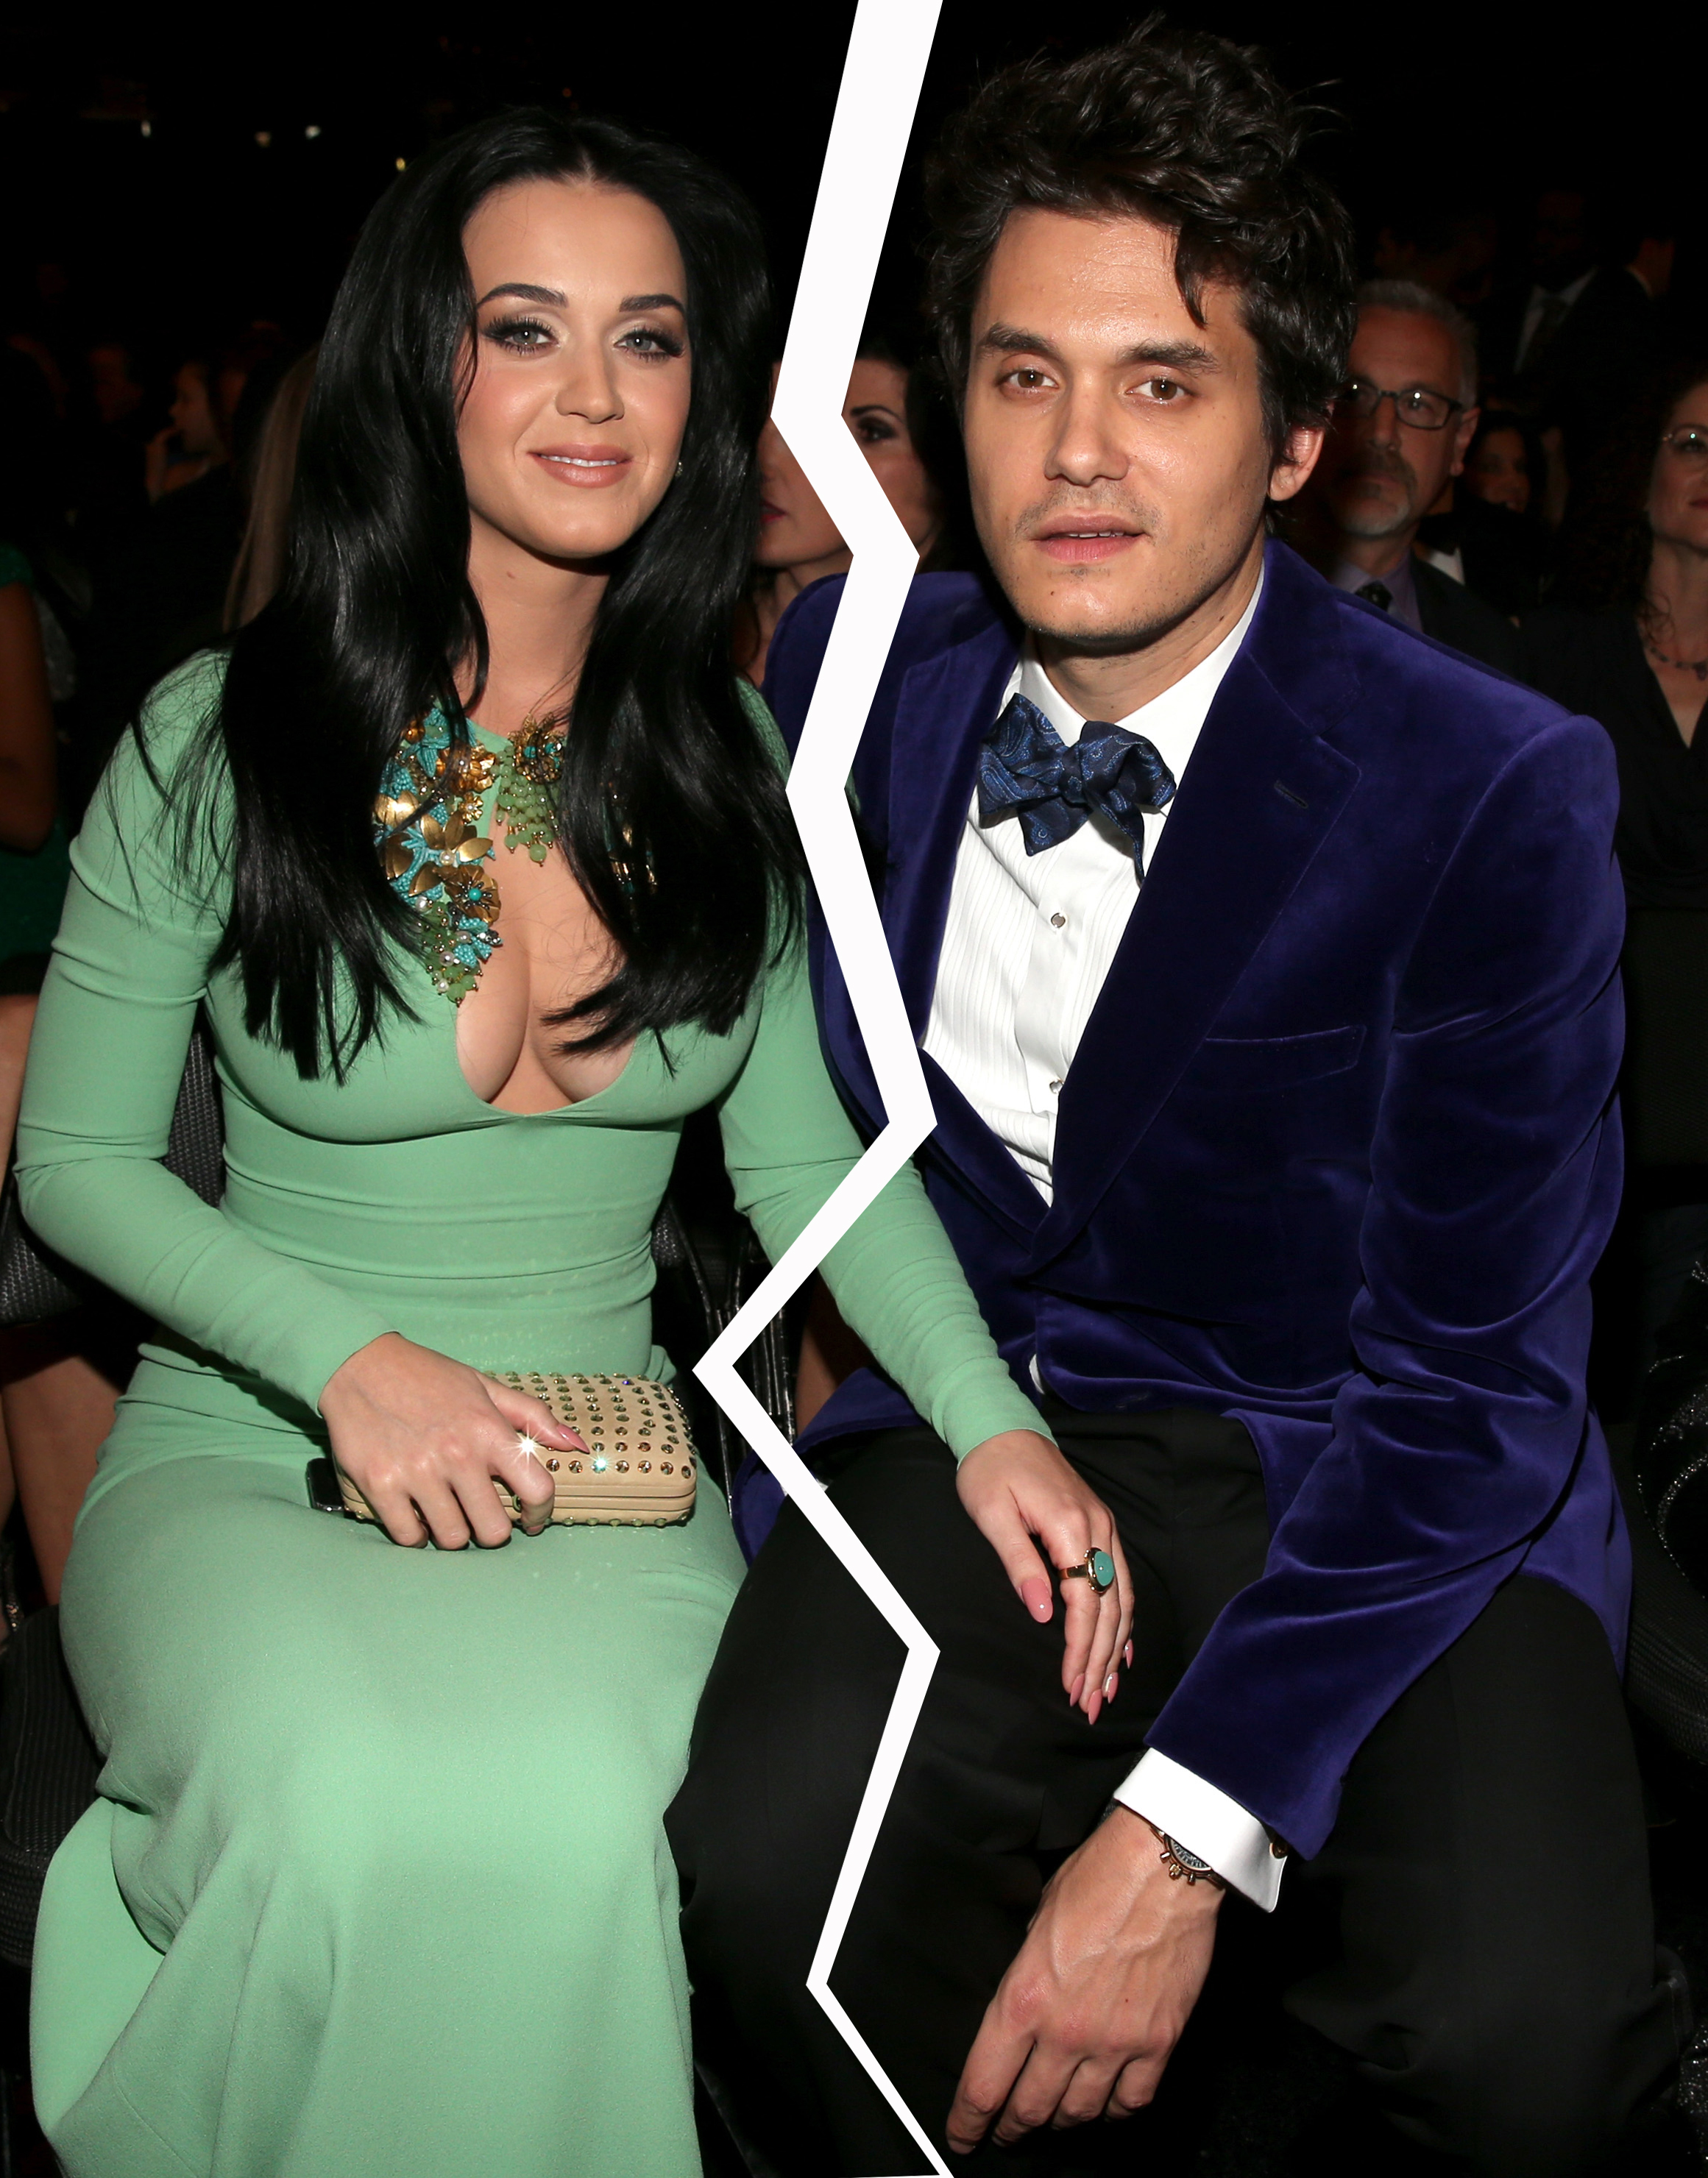 Katy Perry and John Mayer SPLIT again